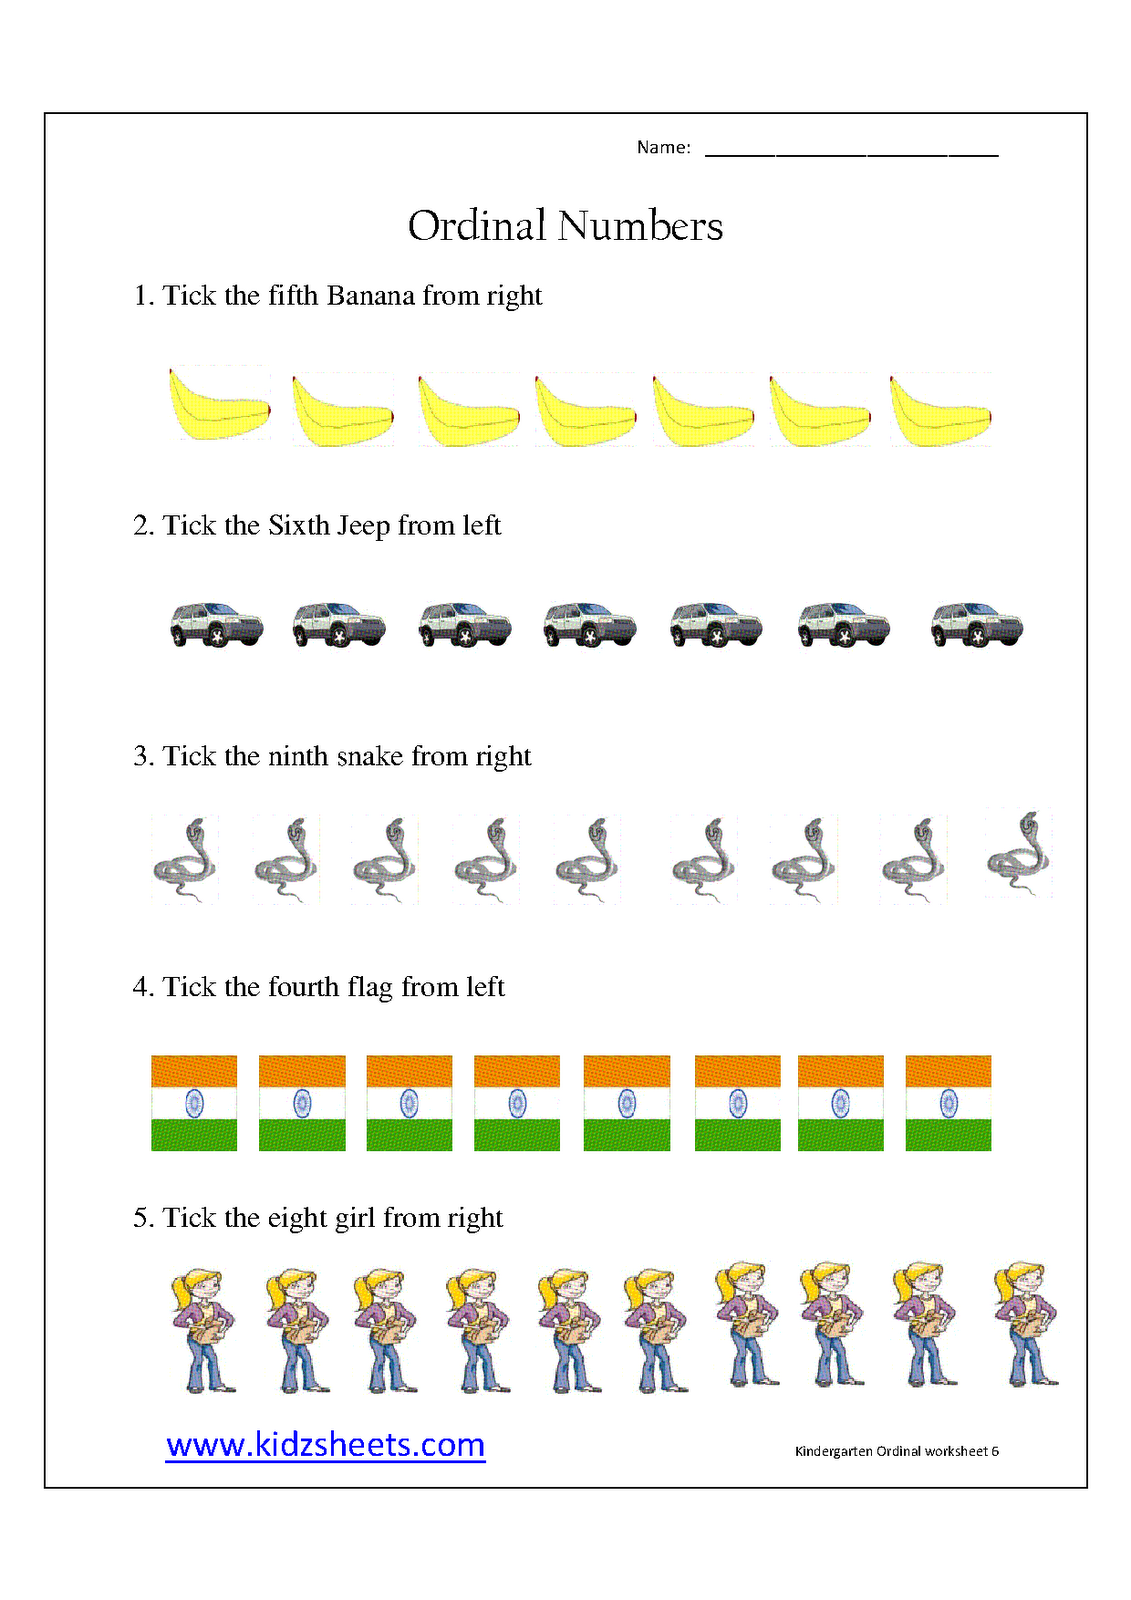 Kidz Worksheets Kindergarten Ordinal Numbers Worksheet6 – Ordinal Numbers Kindergarten Worksheets